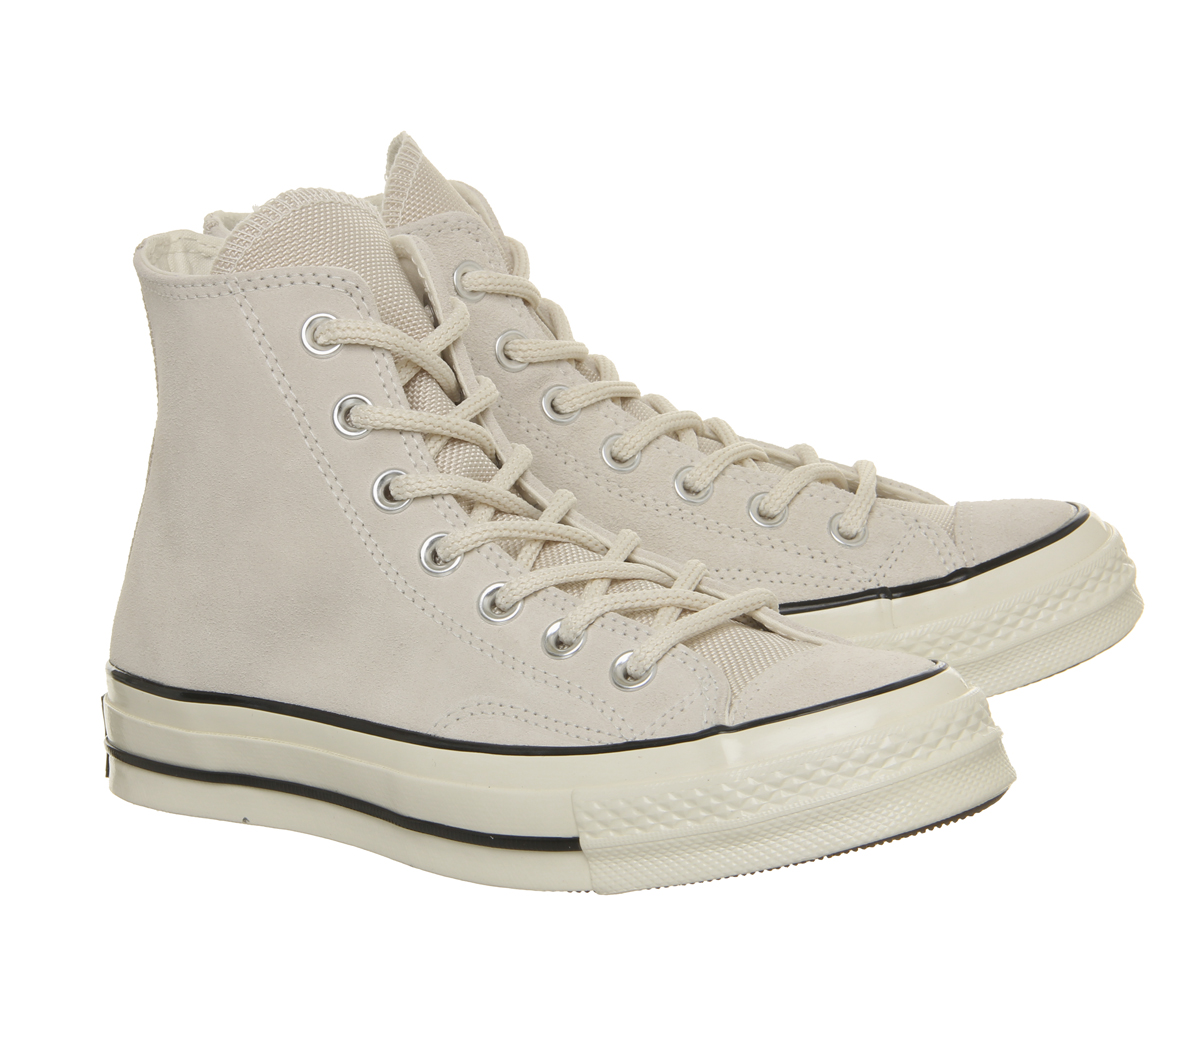 4186b81ab75 Mens Converse All Star Hi 70 S Trainers Natural Ivory Black Egret ...